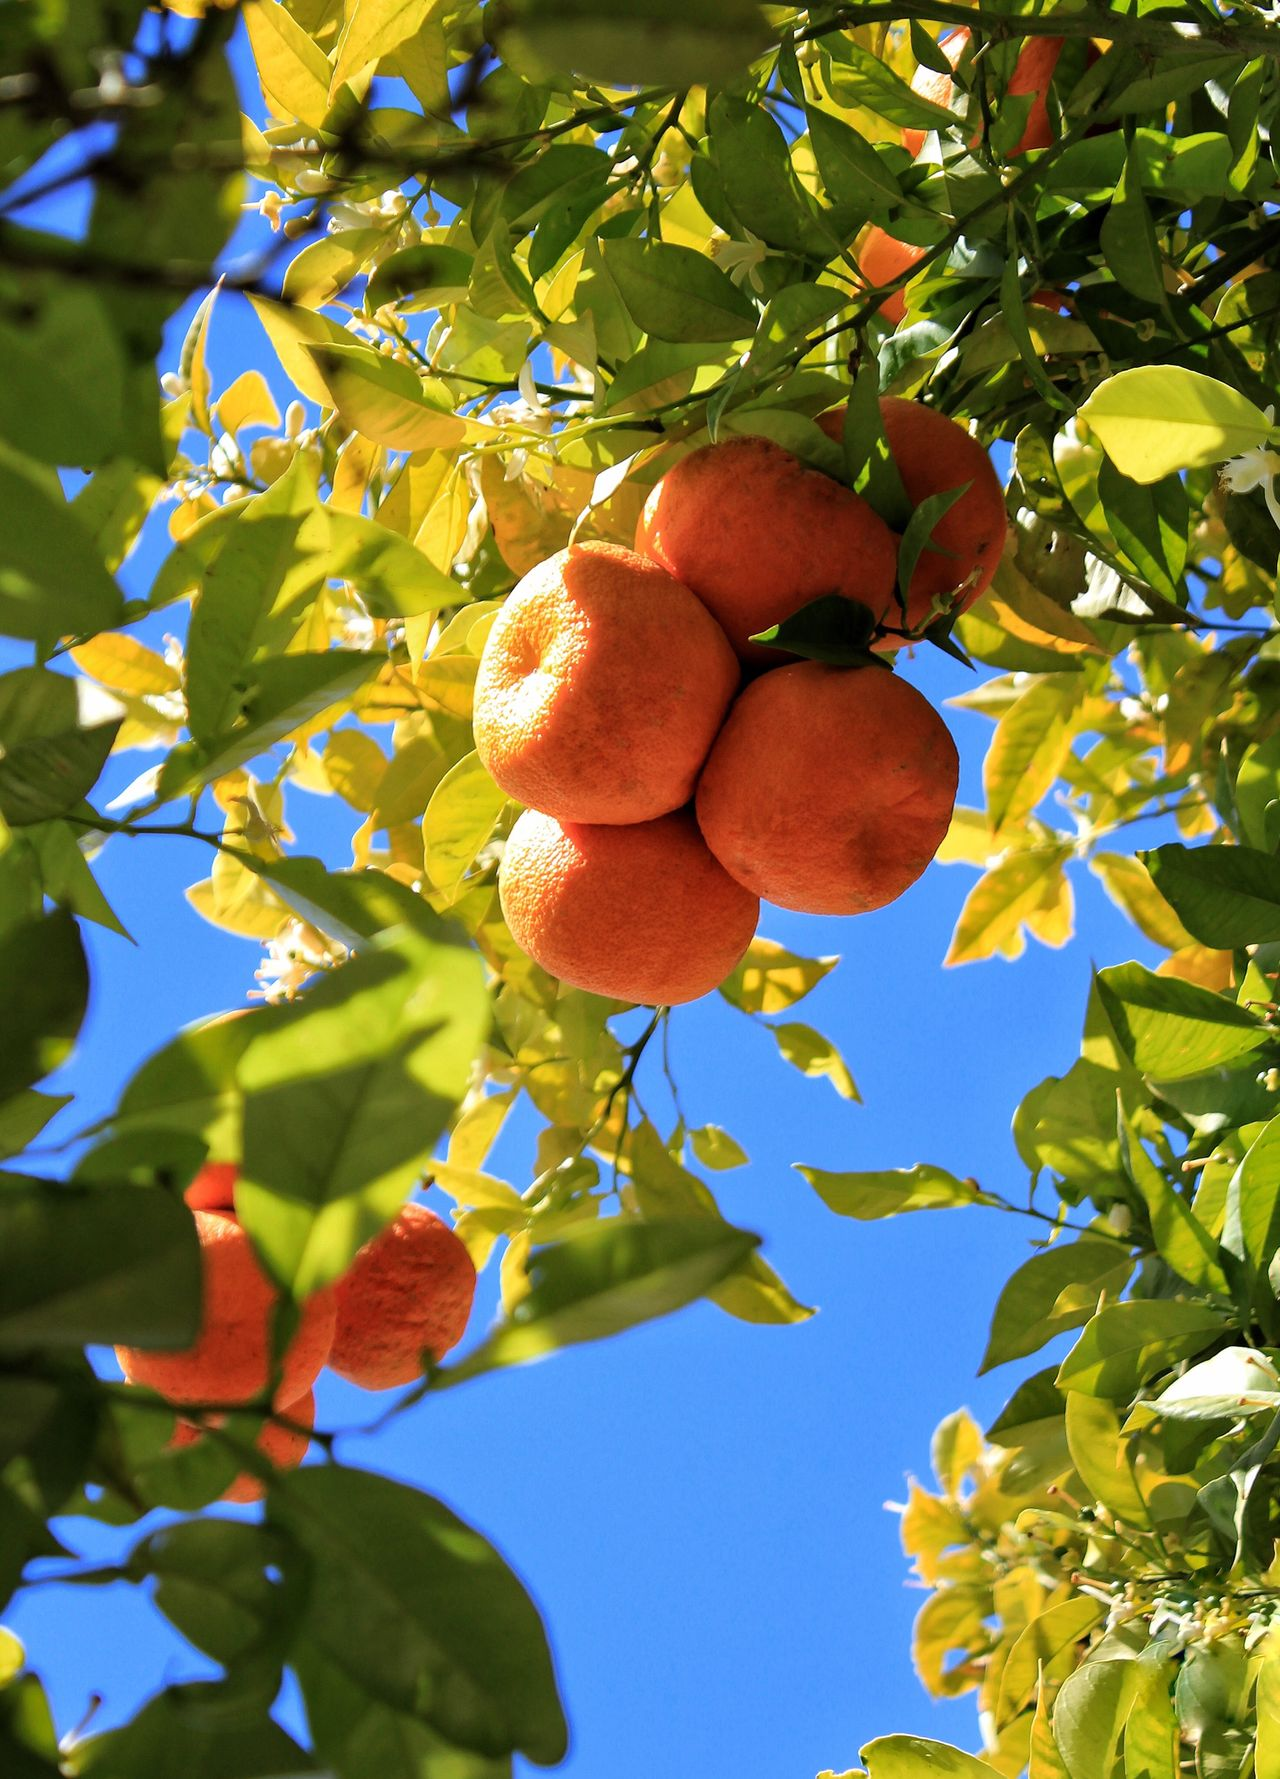 Fruit Growth Tree Leaf Nature Juicy Summer Close-up Branch Food Sky Beauty In Nature Orange Orange Color Oranges Orange Tree Oranges Growing On The Tree Blue Sky Blue Orange Tree And Leaves Orange Tree And Blue Sky Oranges On The Tree Oranges On Tree Green Leaves Green Orange Blue